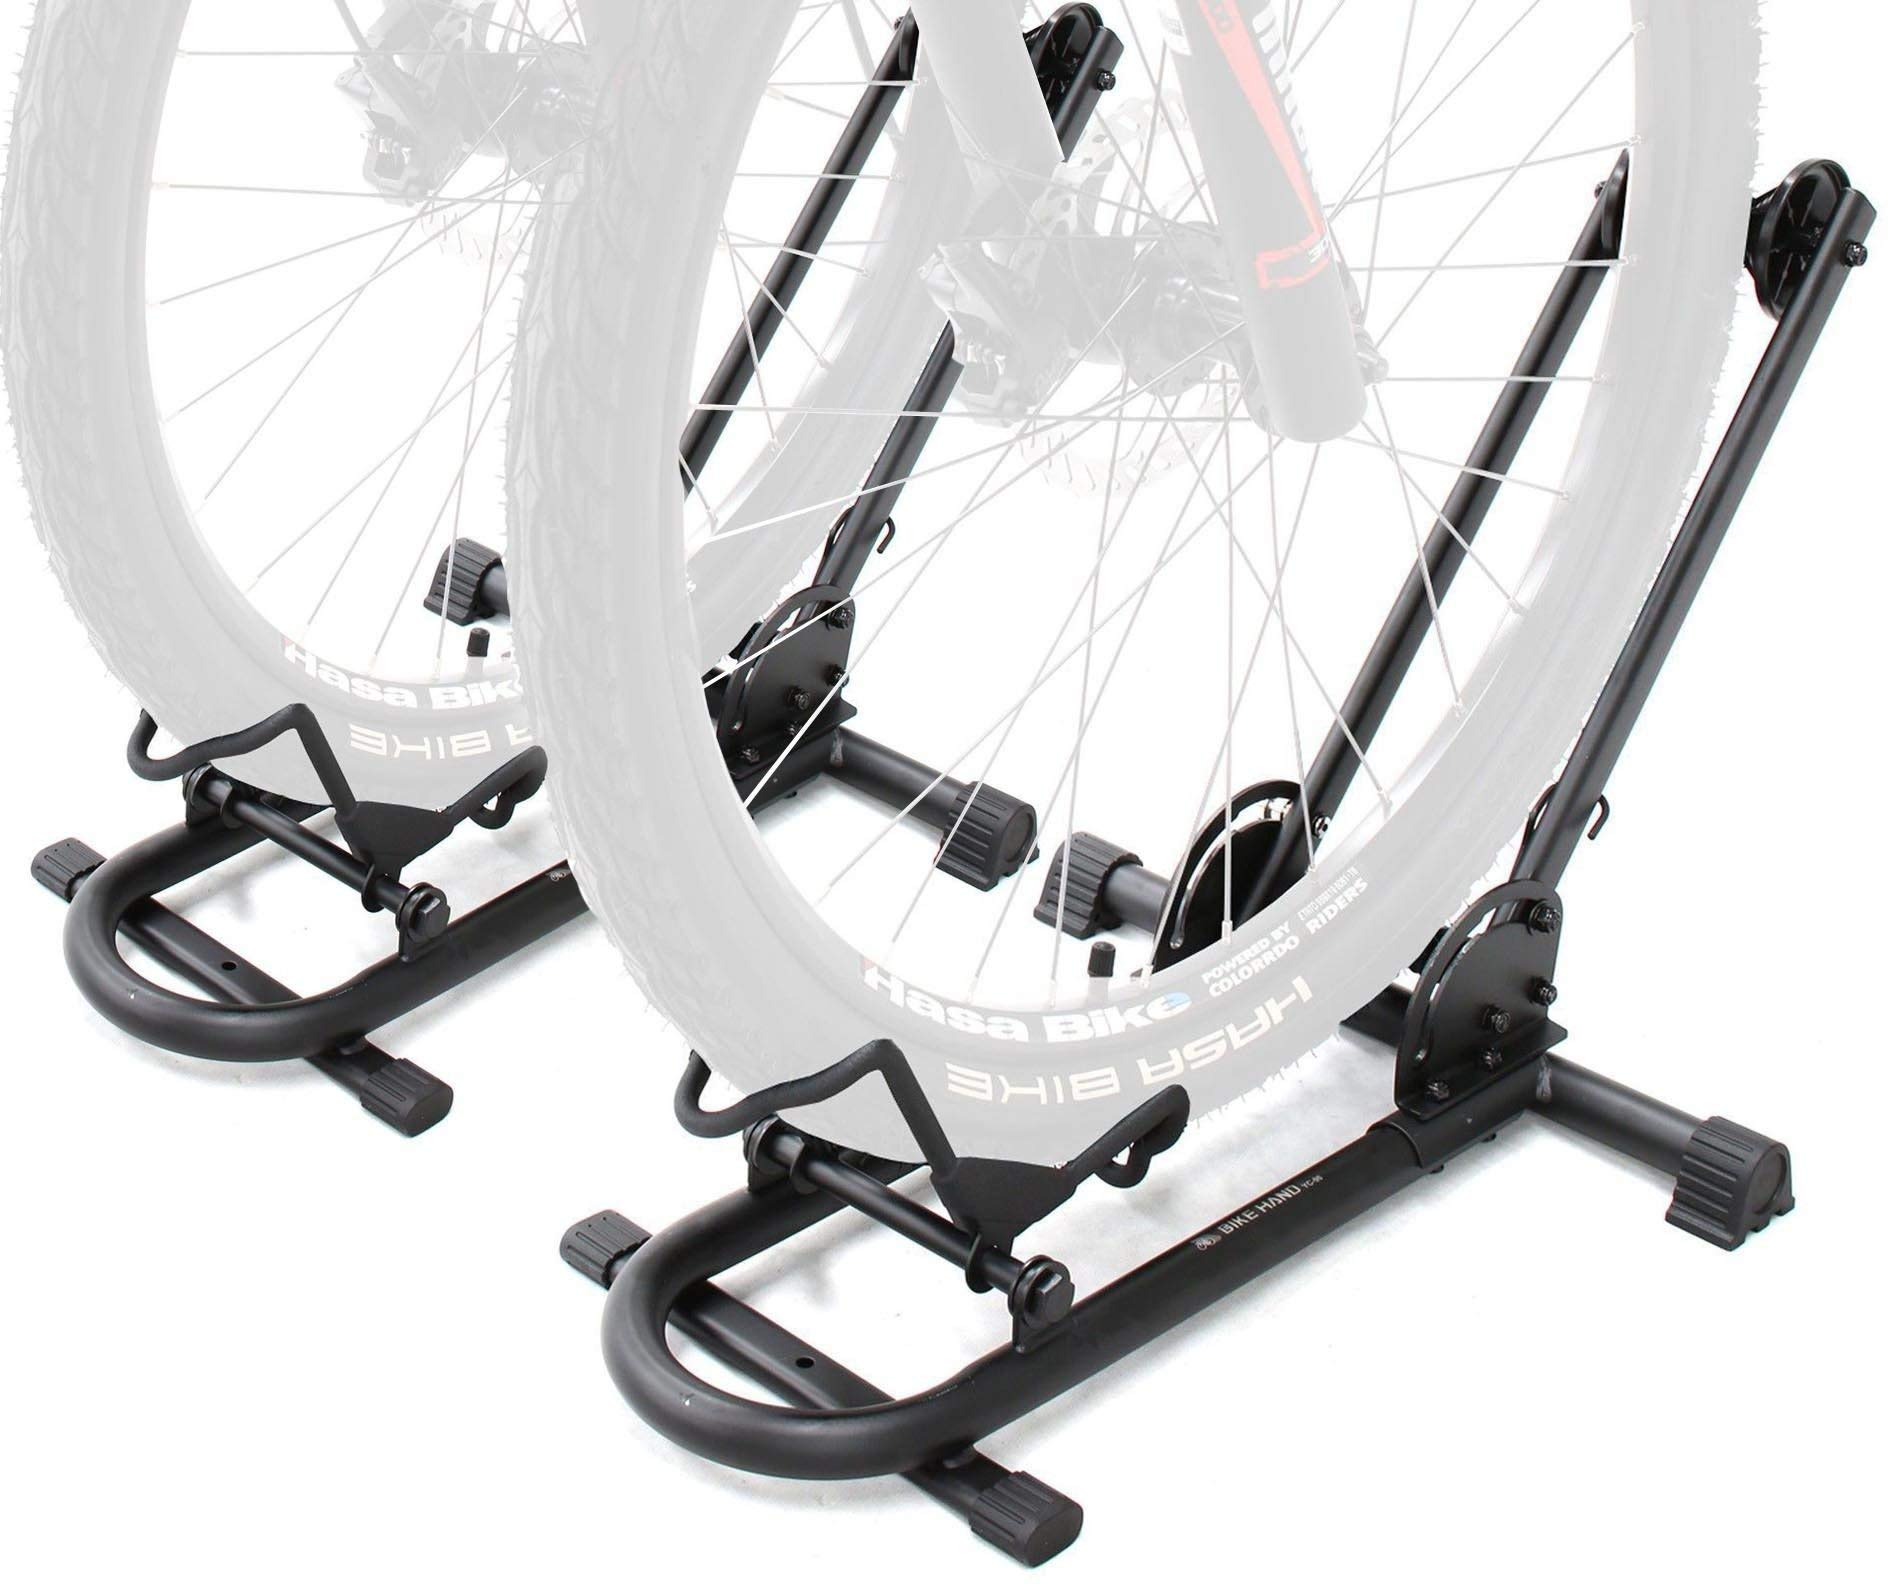 Bikehand Bike Floor Parking Rack Storage Stand Bicycle Pack of 2 (Renewed)